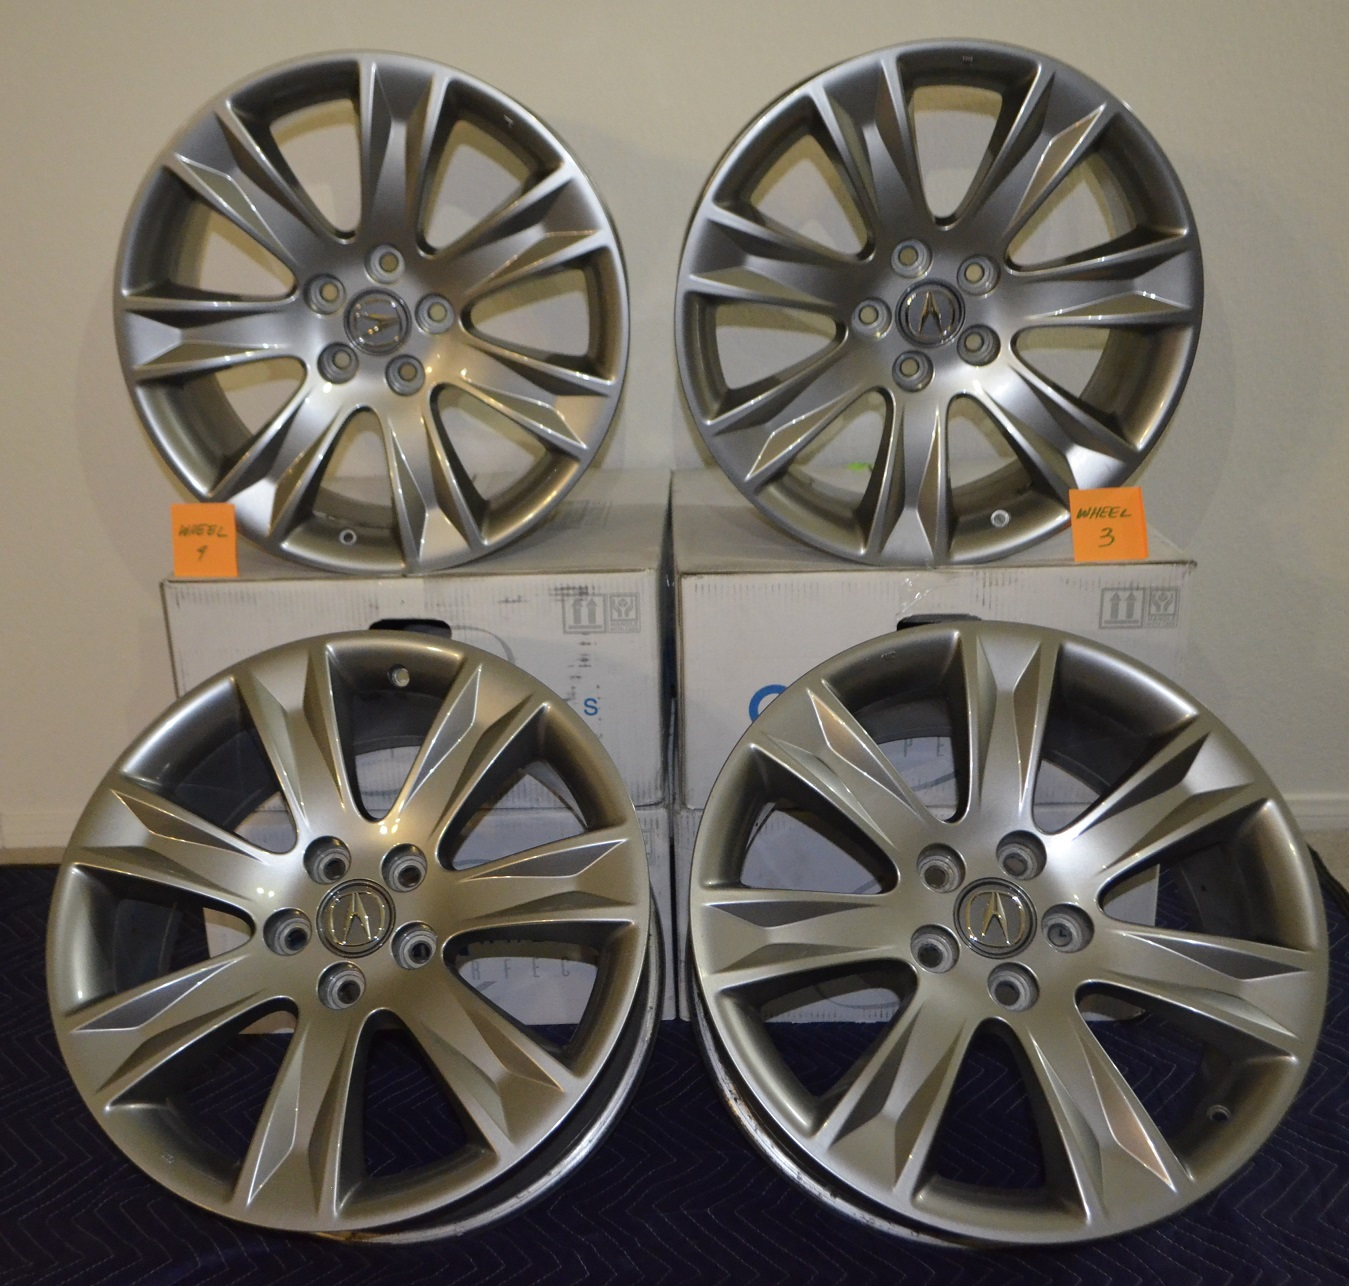 OEM MDX Advance 19x8.5 Wheels Set Of 4